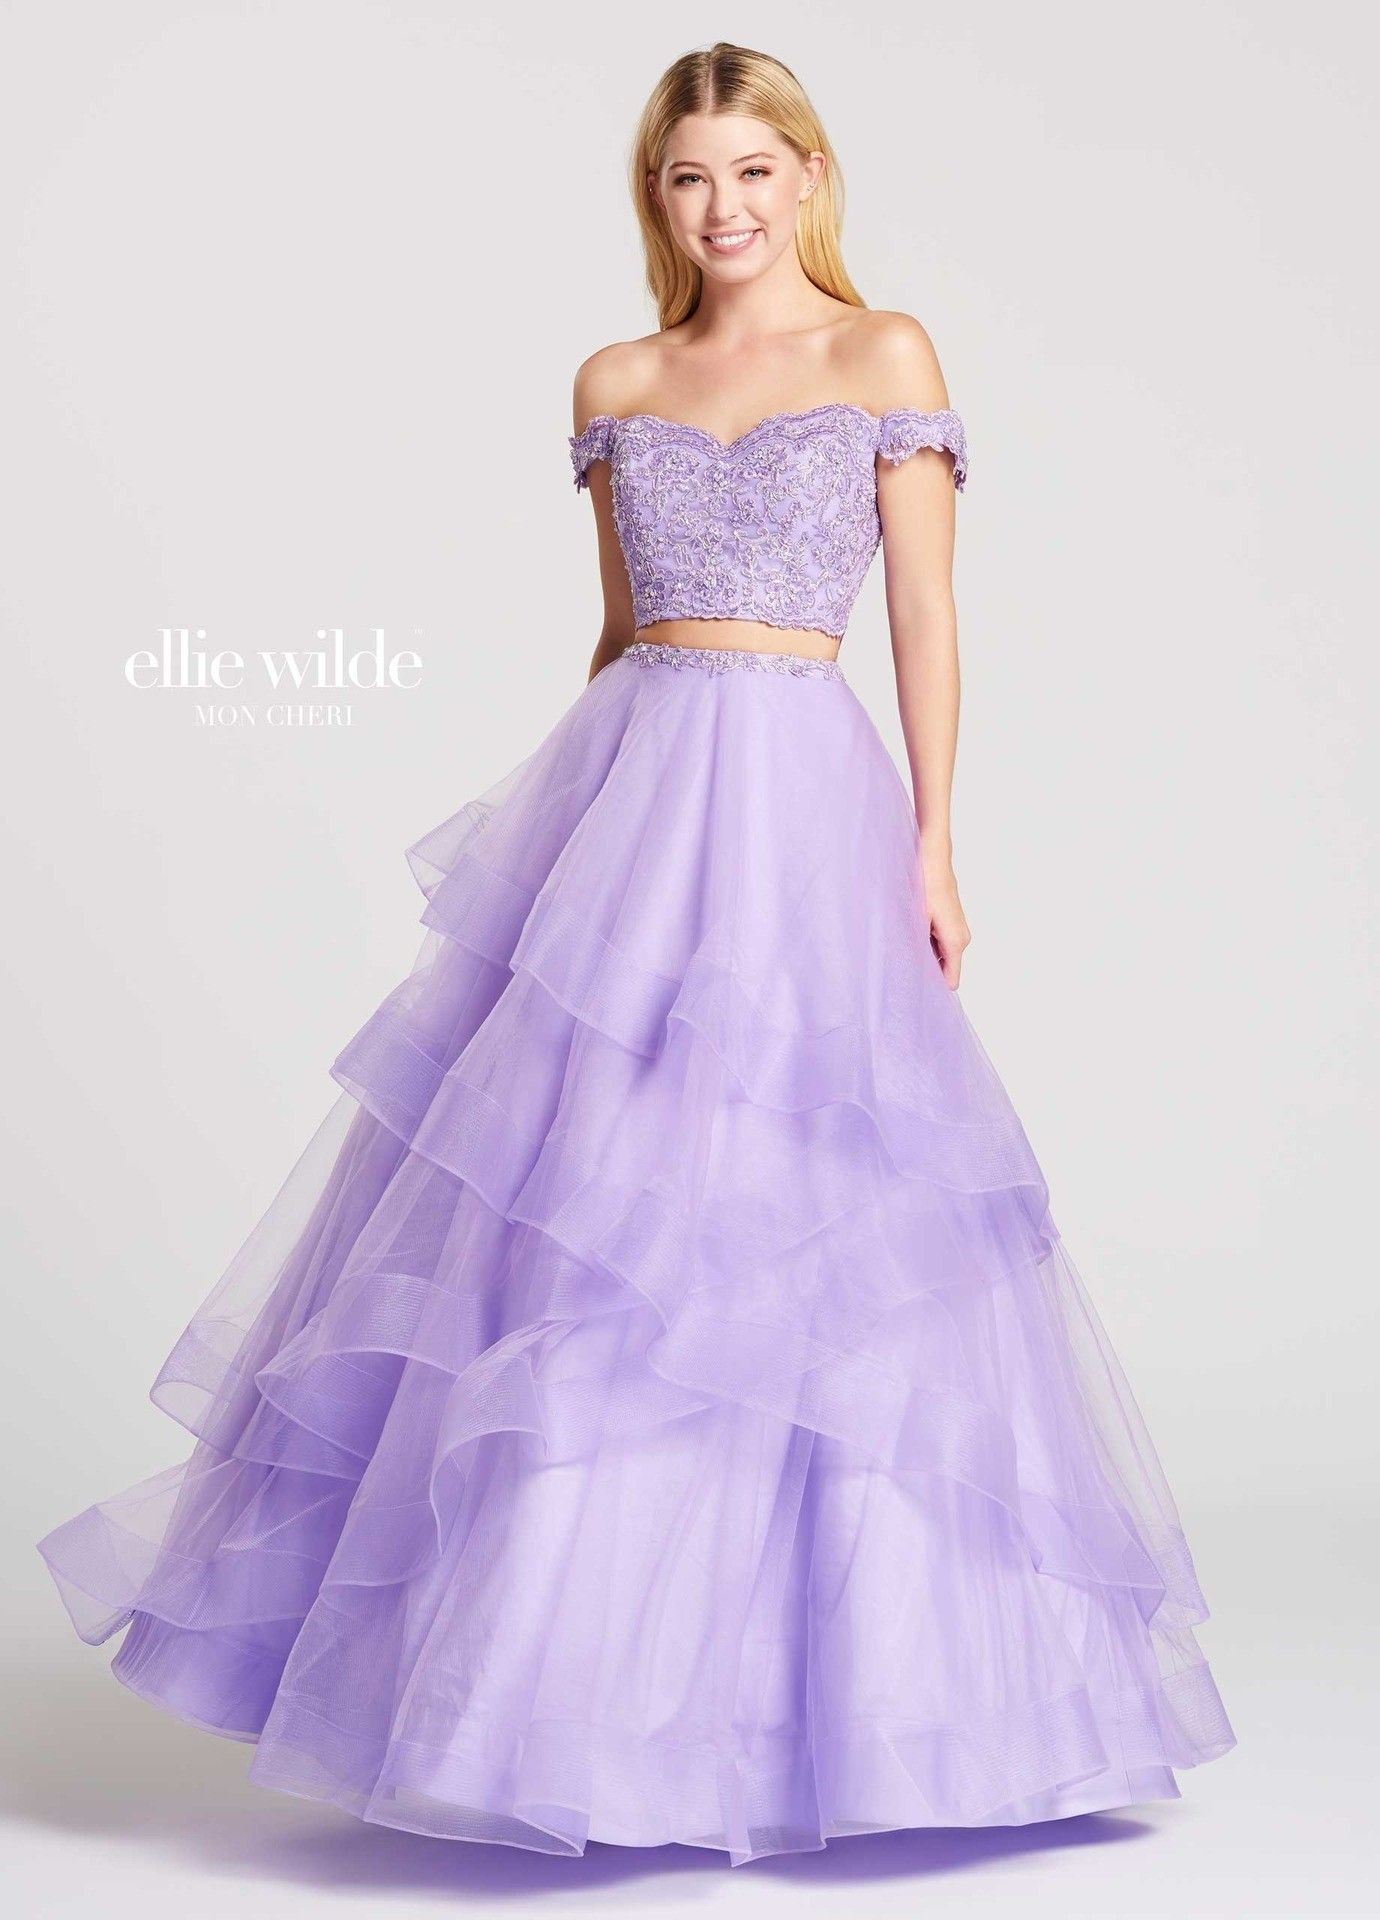 Become The Princess Of Pastels In Ellie Wilde Ew118095 This Sweet Two Piece Ball Gown Includes A Lace Top With A Line Prom Dresses Prom Dresses Gowns Dresses [ 1920 x 1380 Pixel ]